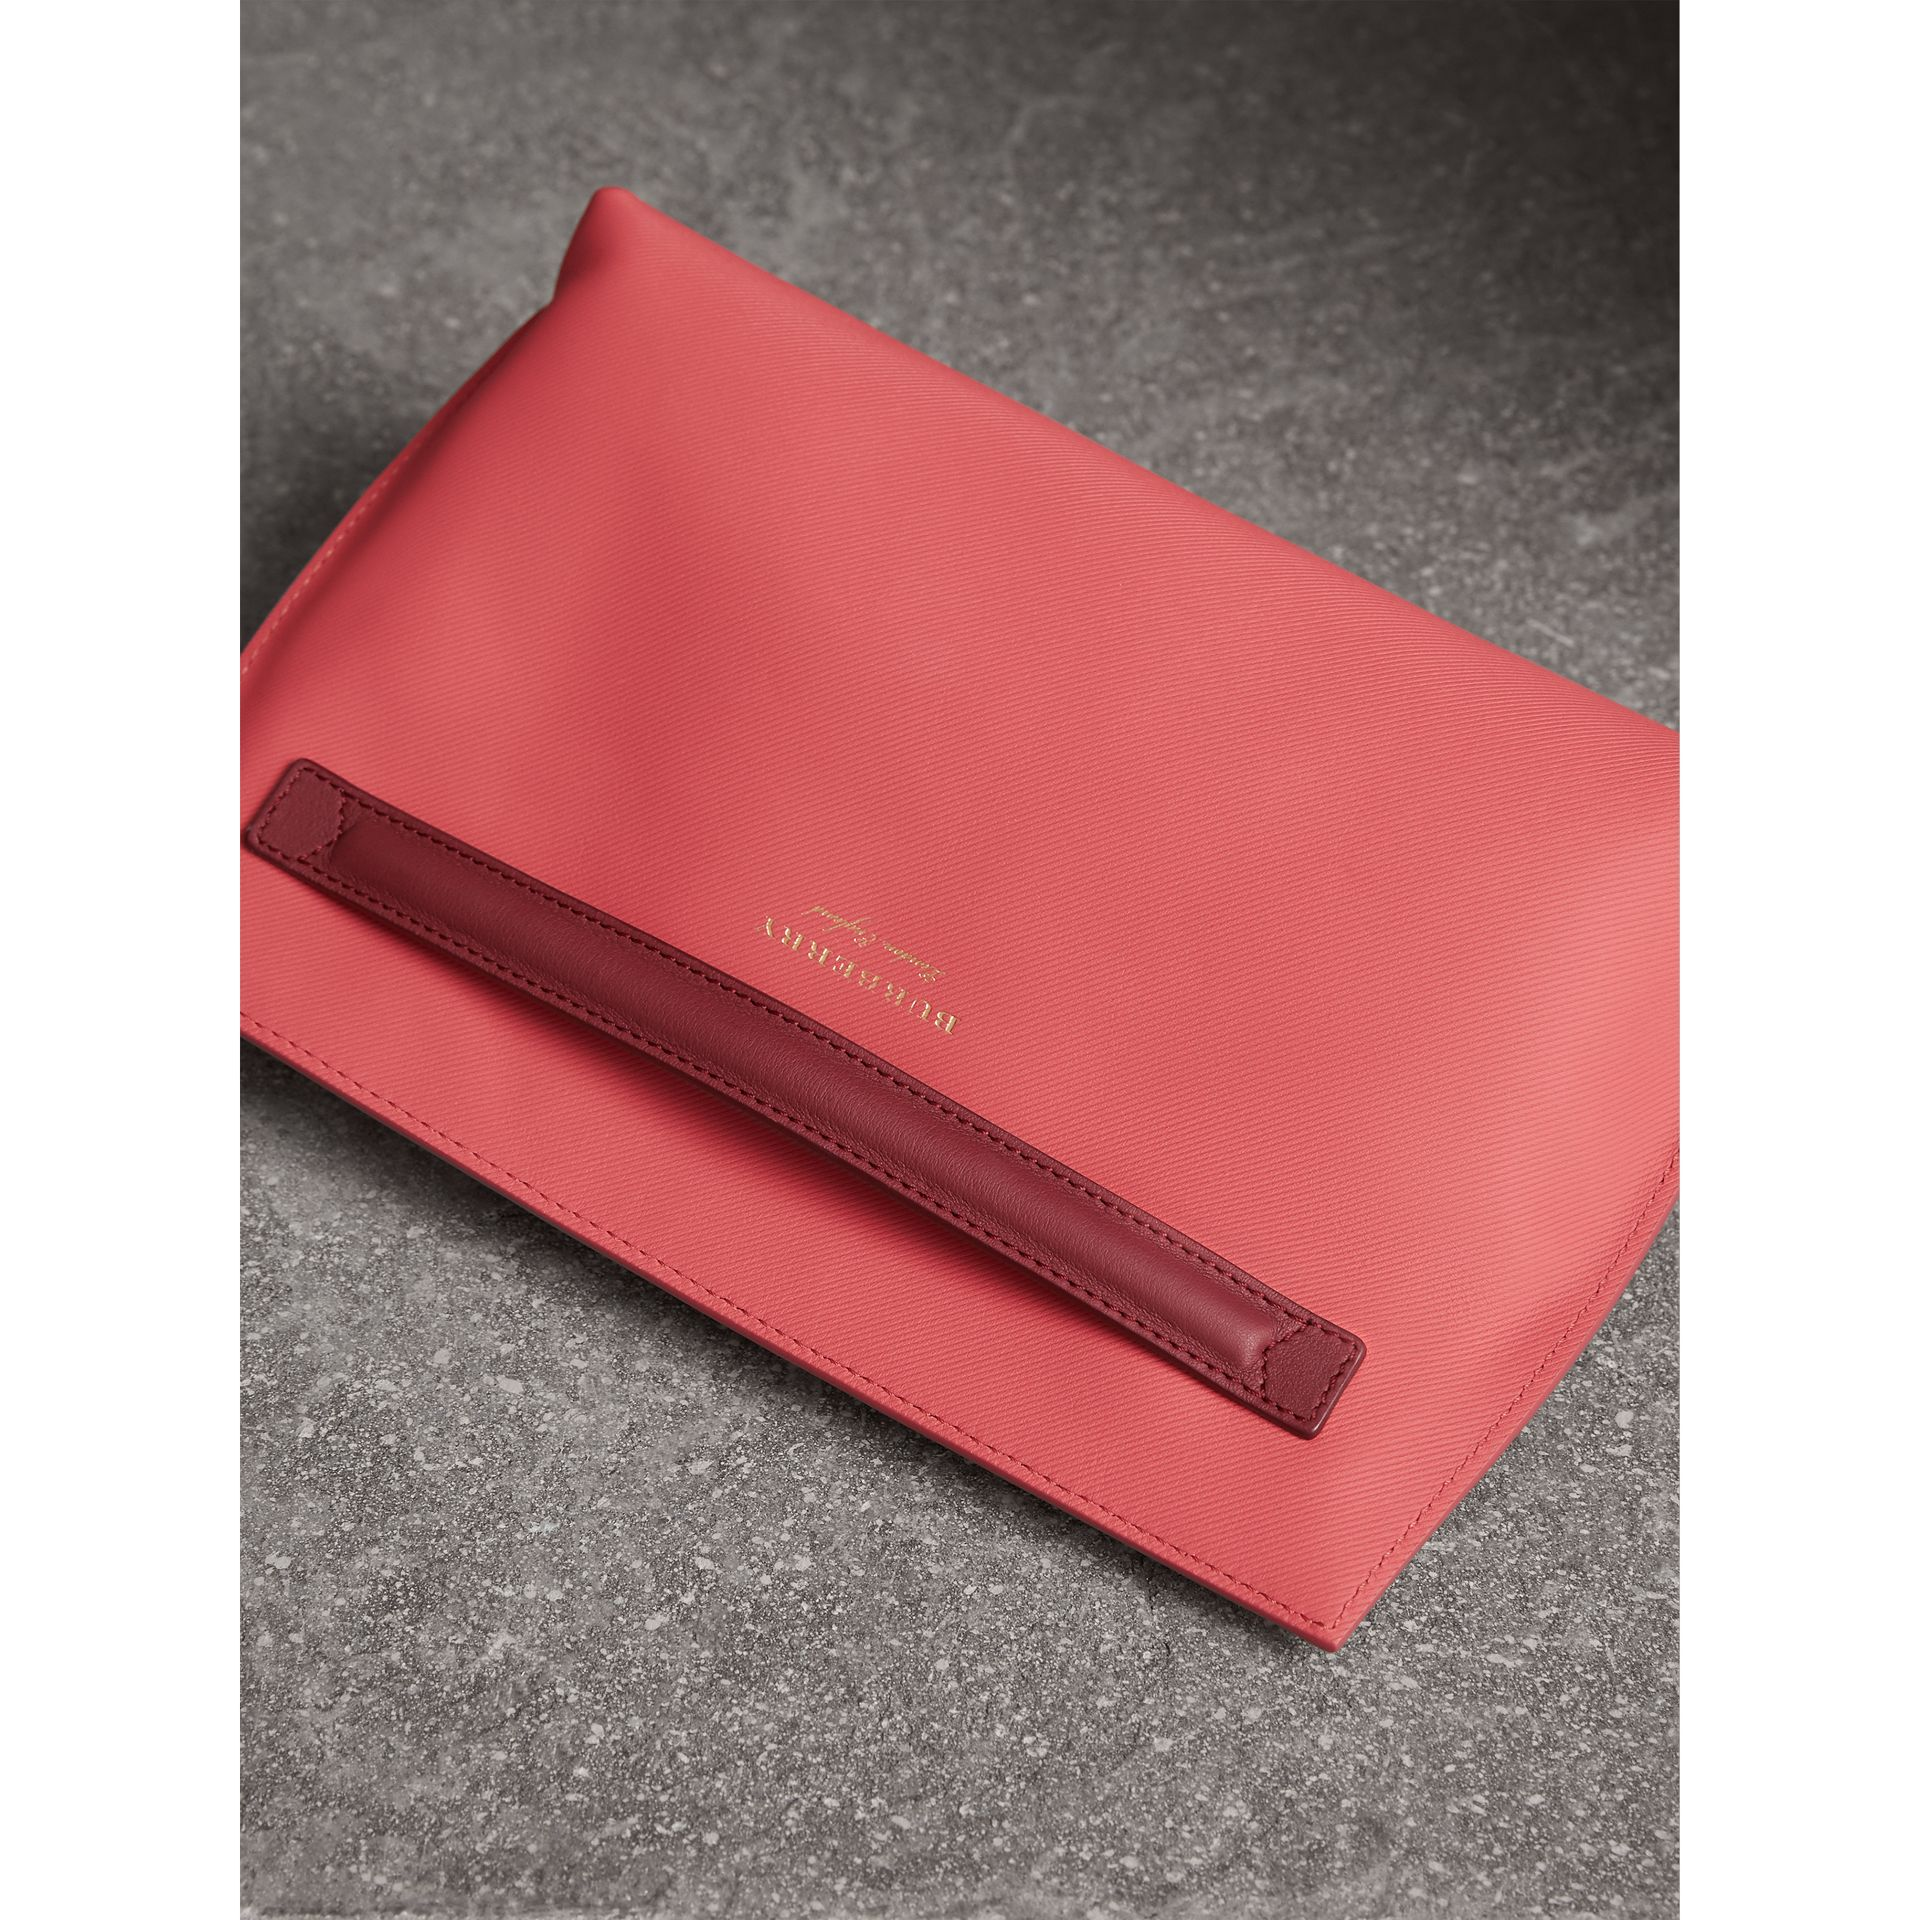 Two-tone Trench Leather Wristlet Pouch in Blossom Pink/antique Red - Women | Burberry - gallery image 4